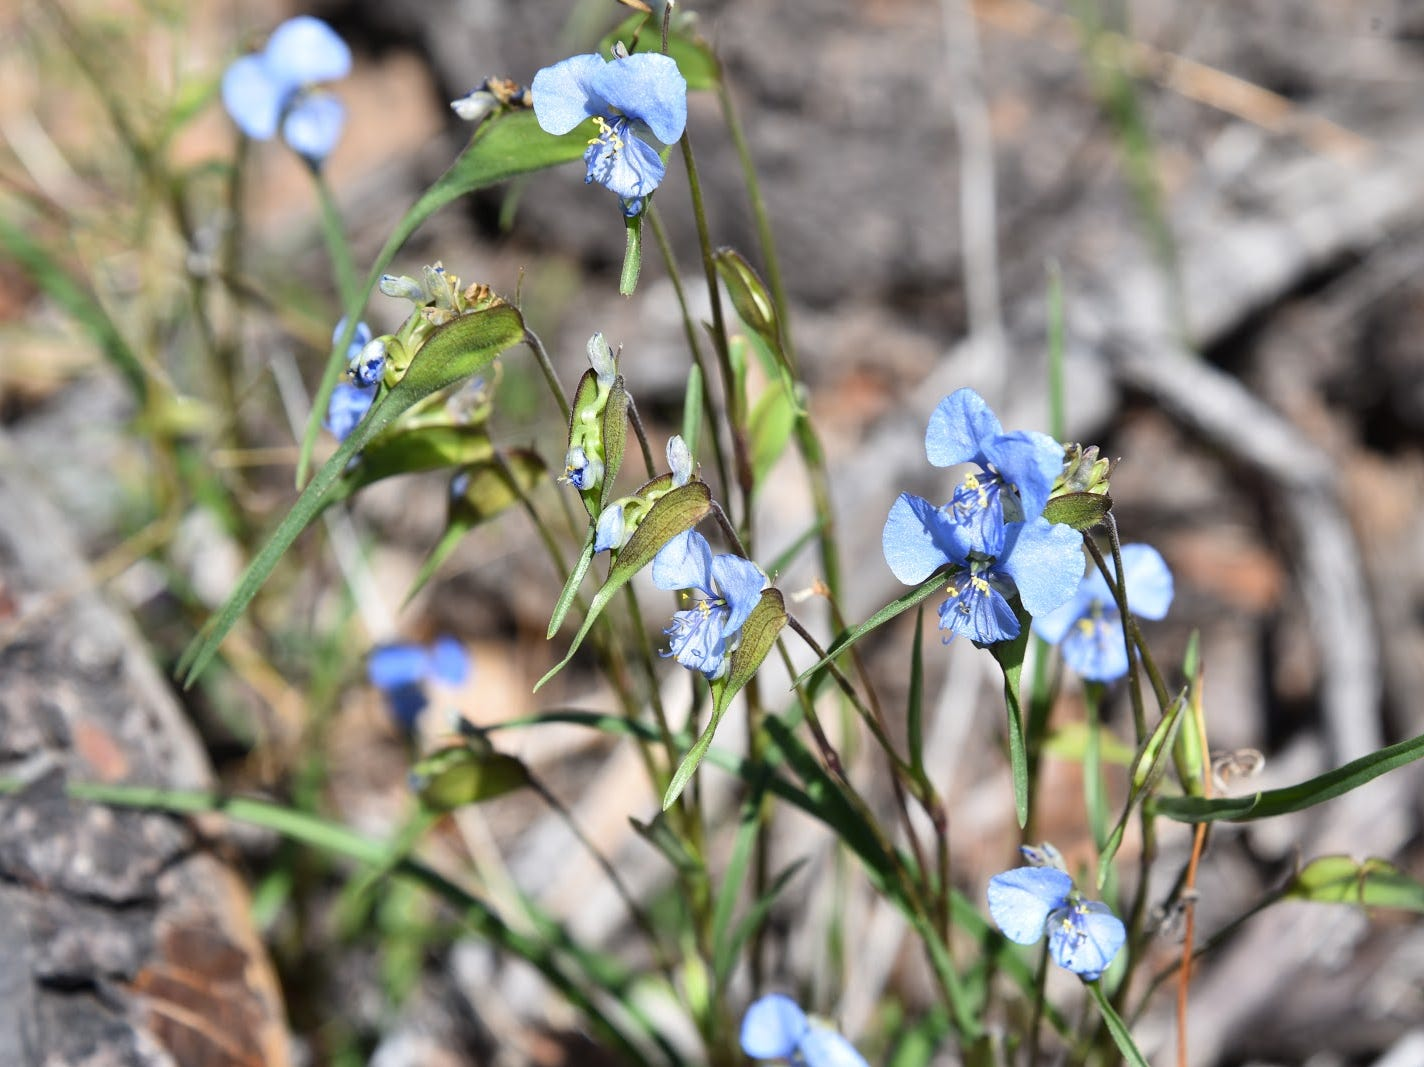 Western dayflowers bloom through September near Sheep Creek Point.